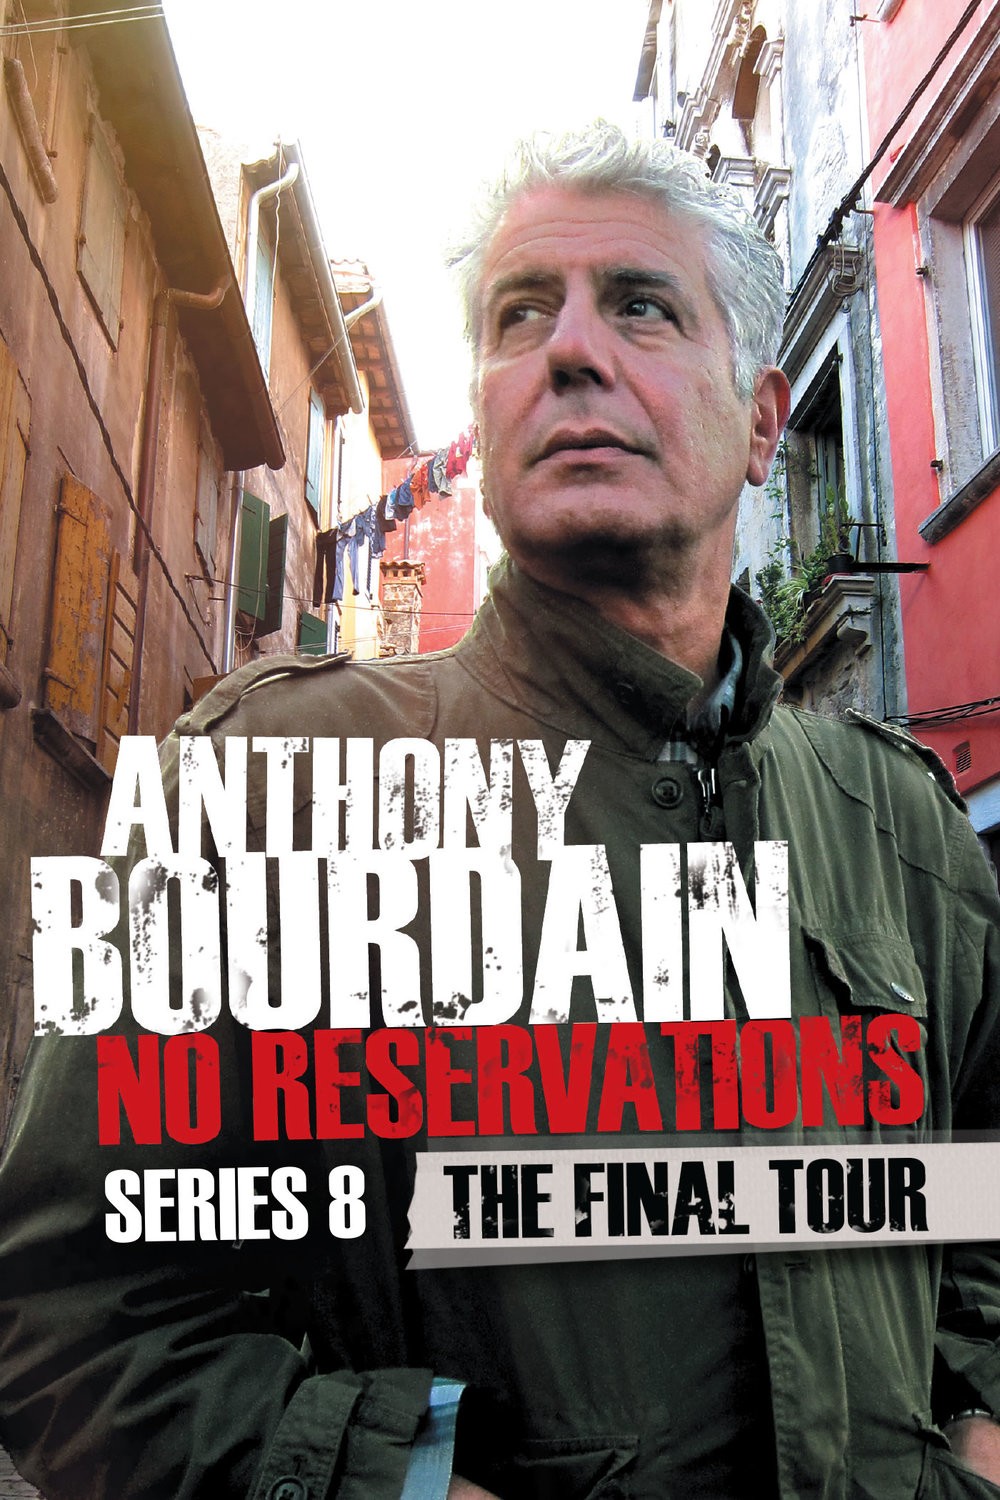 Anthony_Bourdain_No_reservations_S8_R-114032-9_movie_pack.jpg